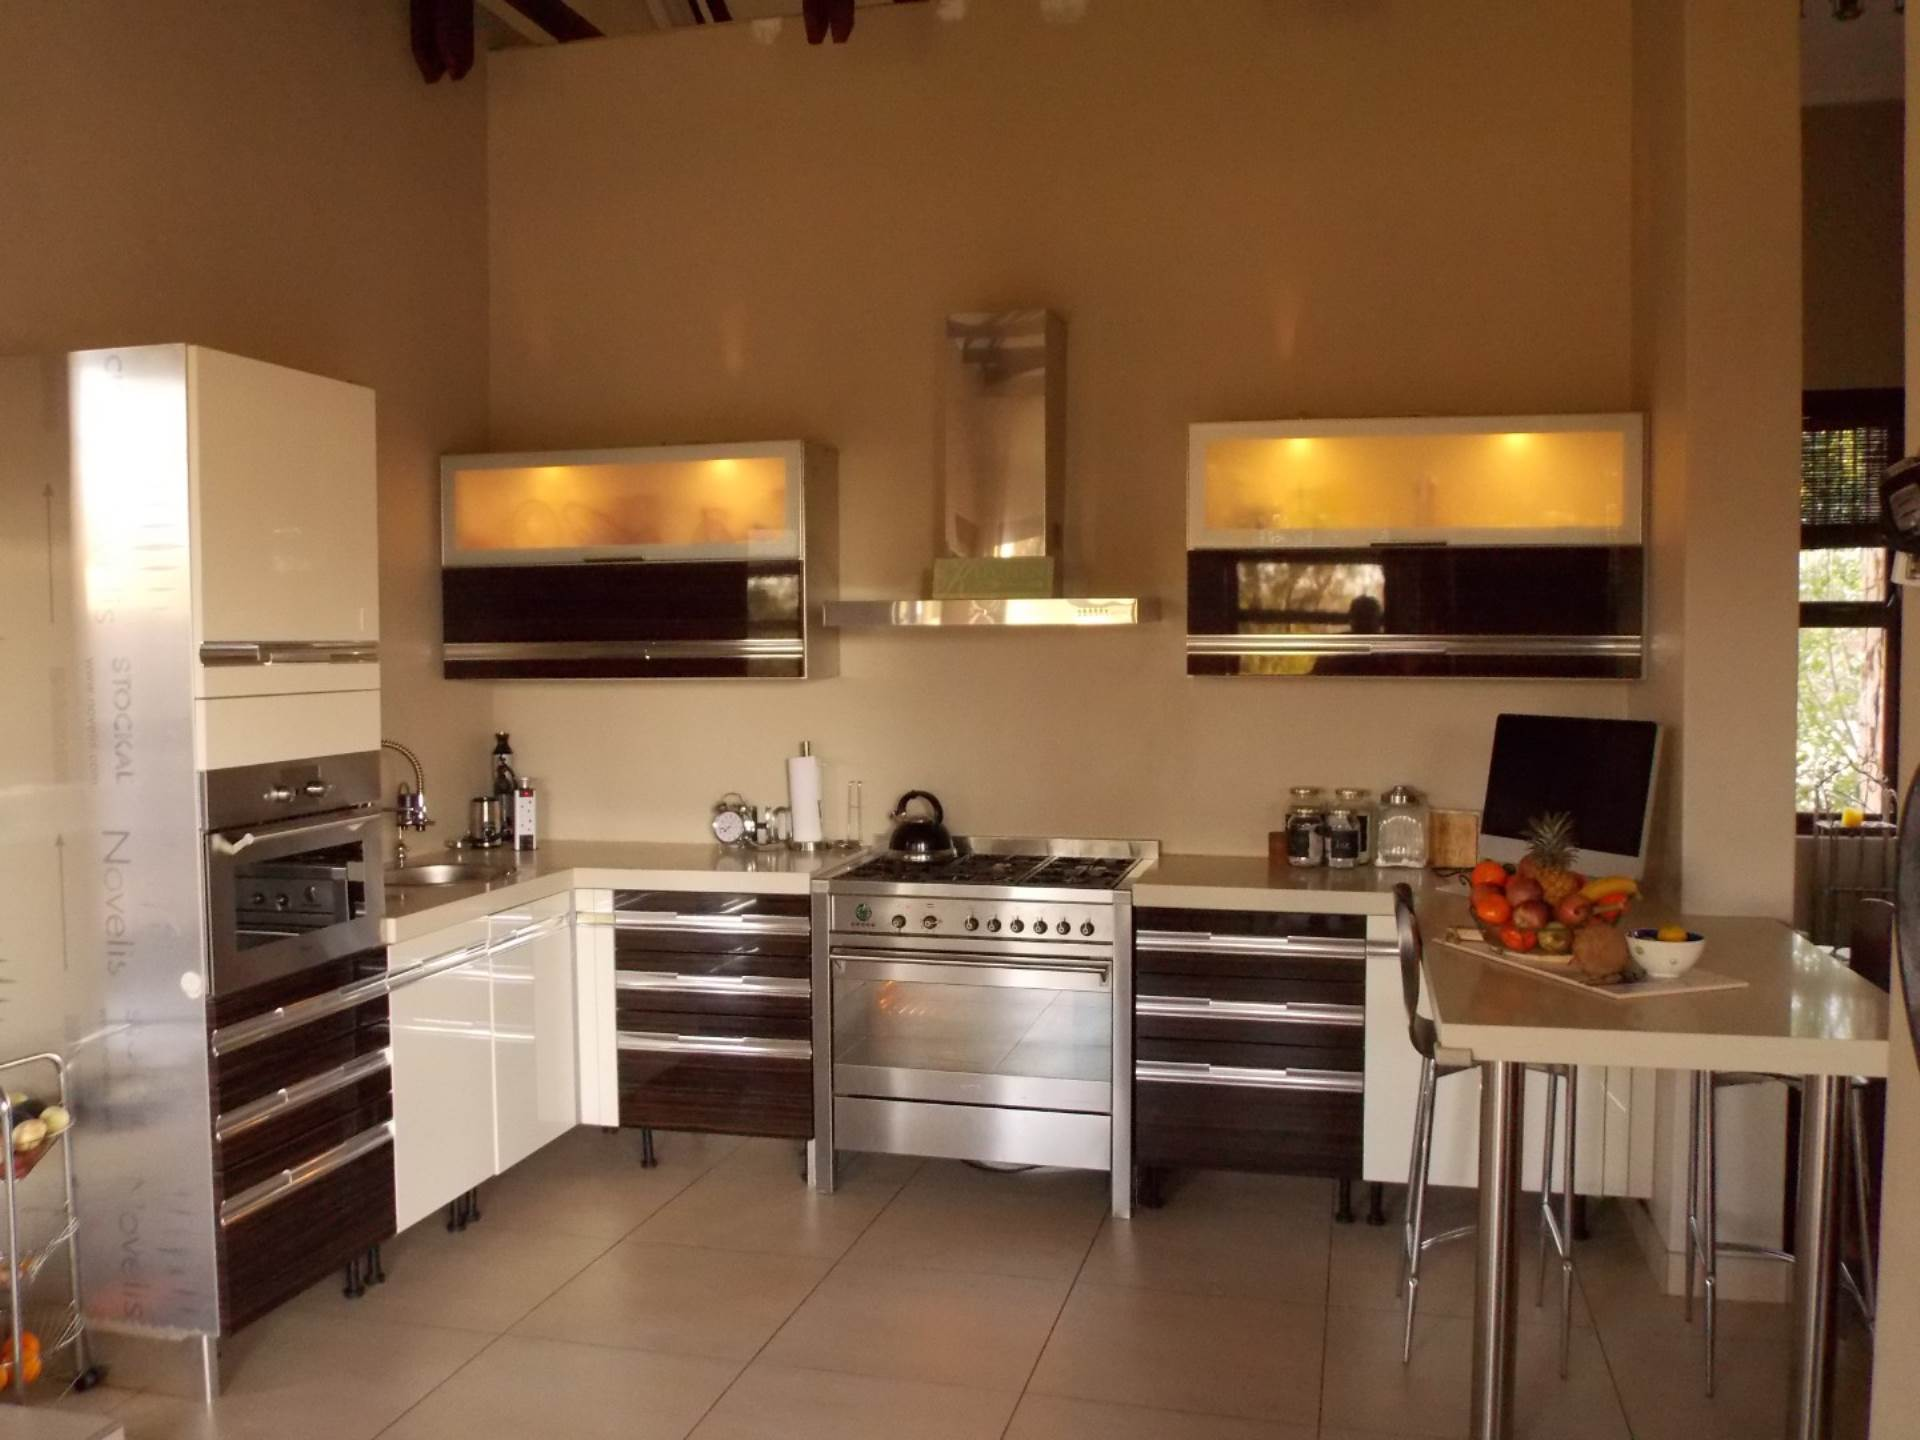 Rietvlei View Country Estate property for sale. Ref No: 13675032. Picture no 8